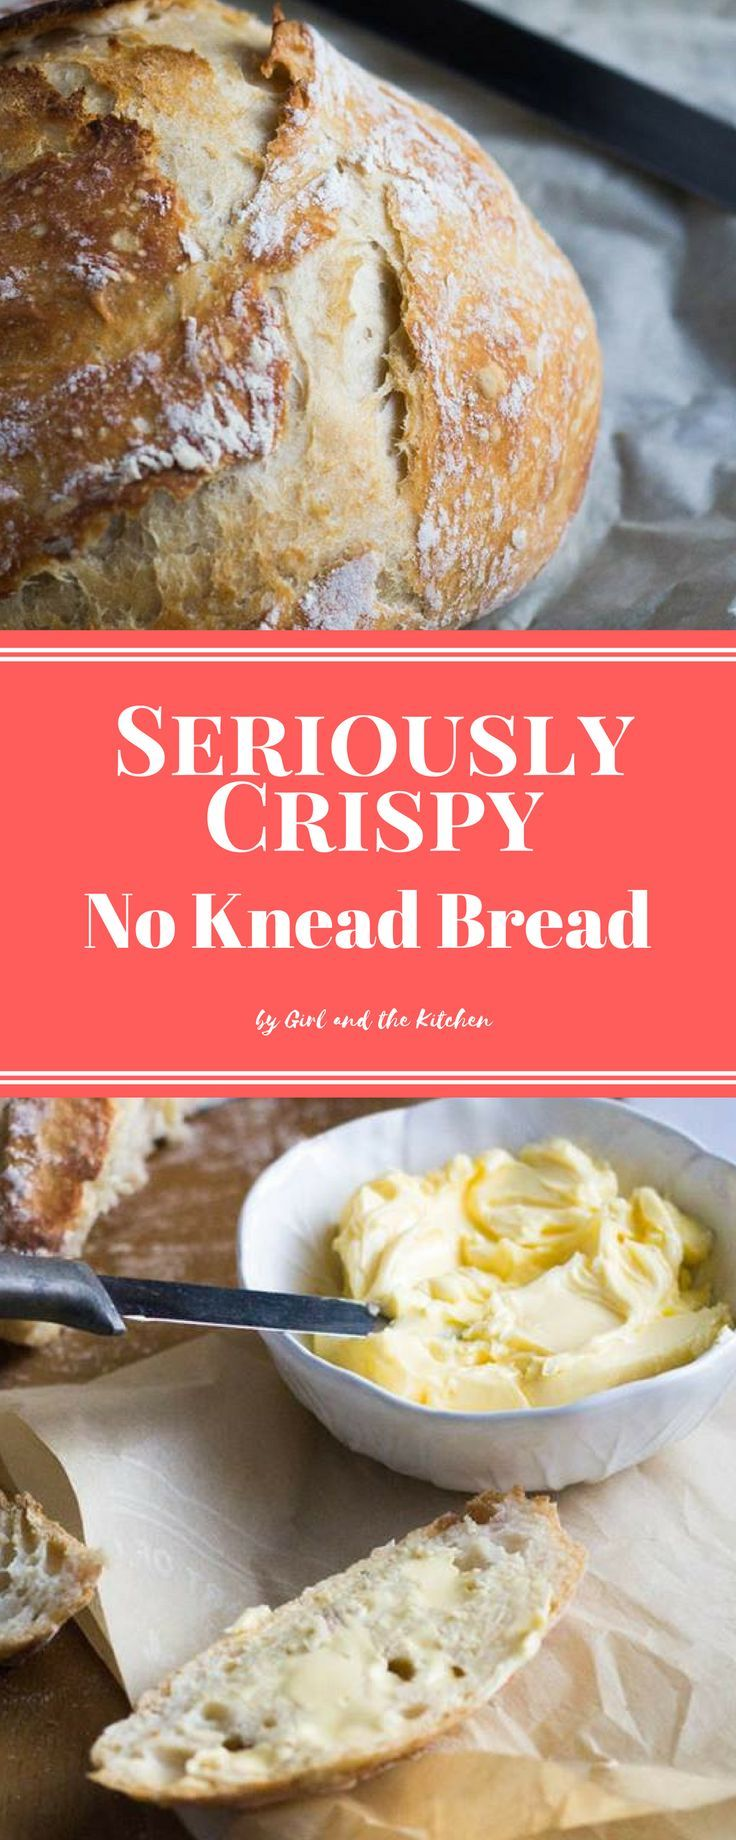 Forget getting out the mixer or the bread maker in order to achieve perfect homemade bread! This seriously crispy no knead bread requires no mixer, no dough hook nor any time to knead by hand! Magic happens quite simply with just a few pantry ingredients! I may be a bit late to the No Knead Bread band …